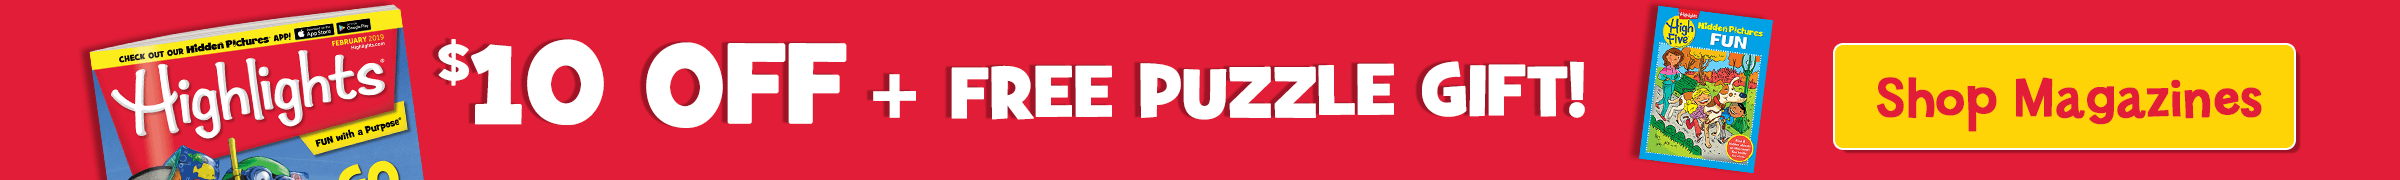 Take $10 off plus get a free puzzle gift with any magazine purchase